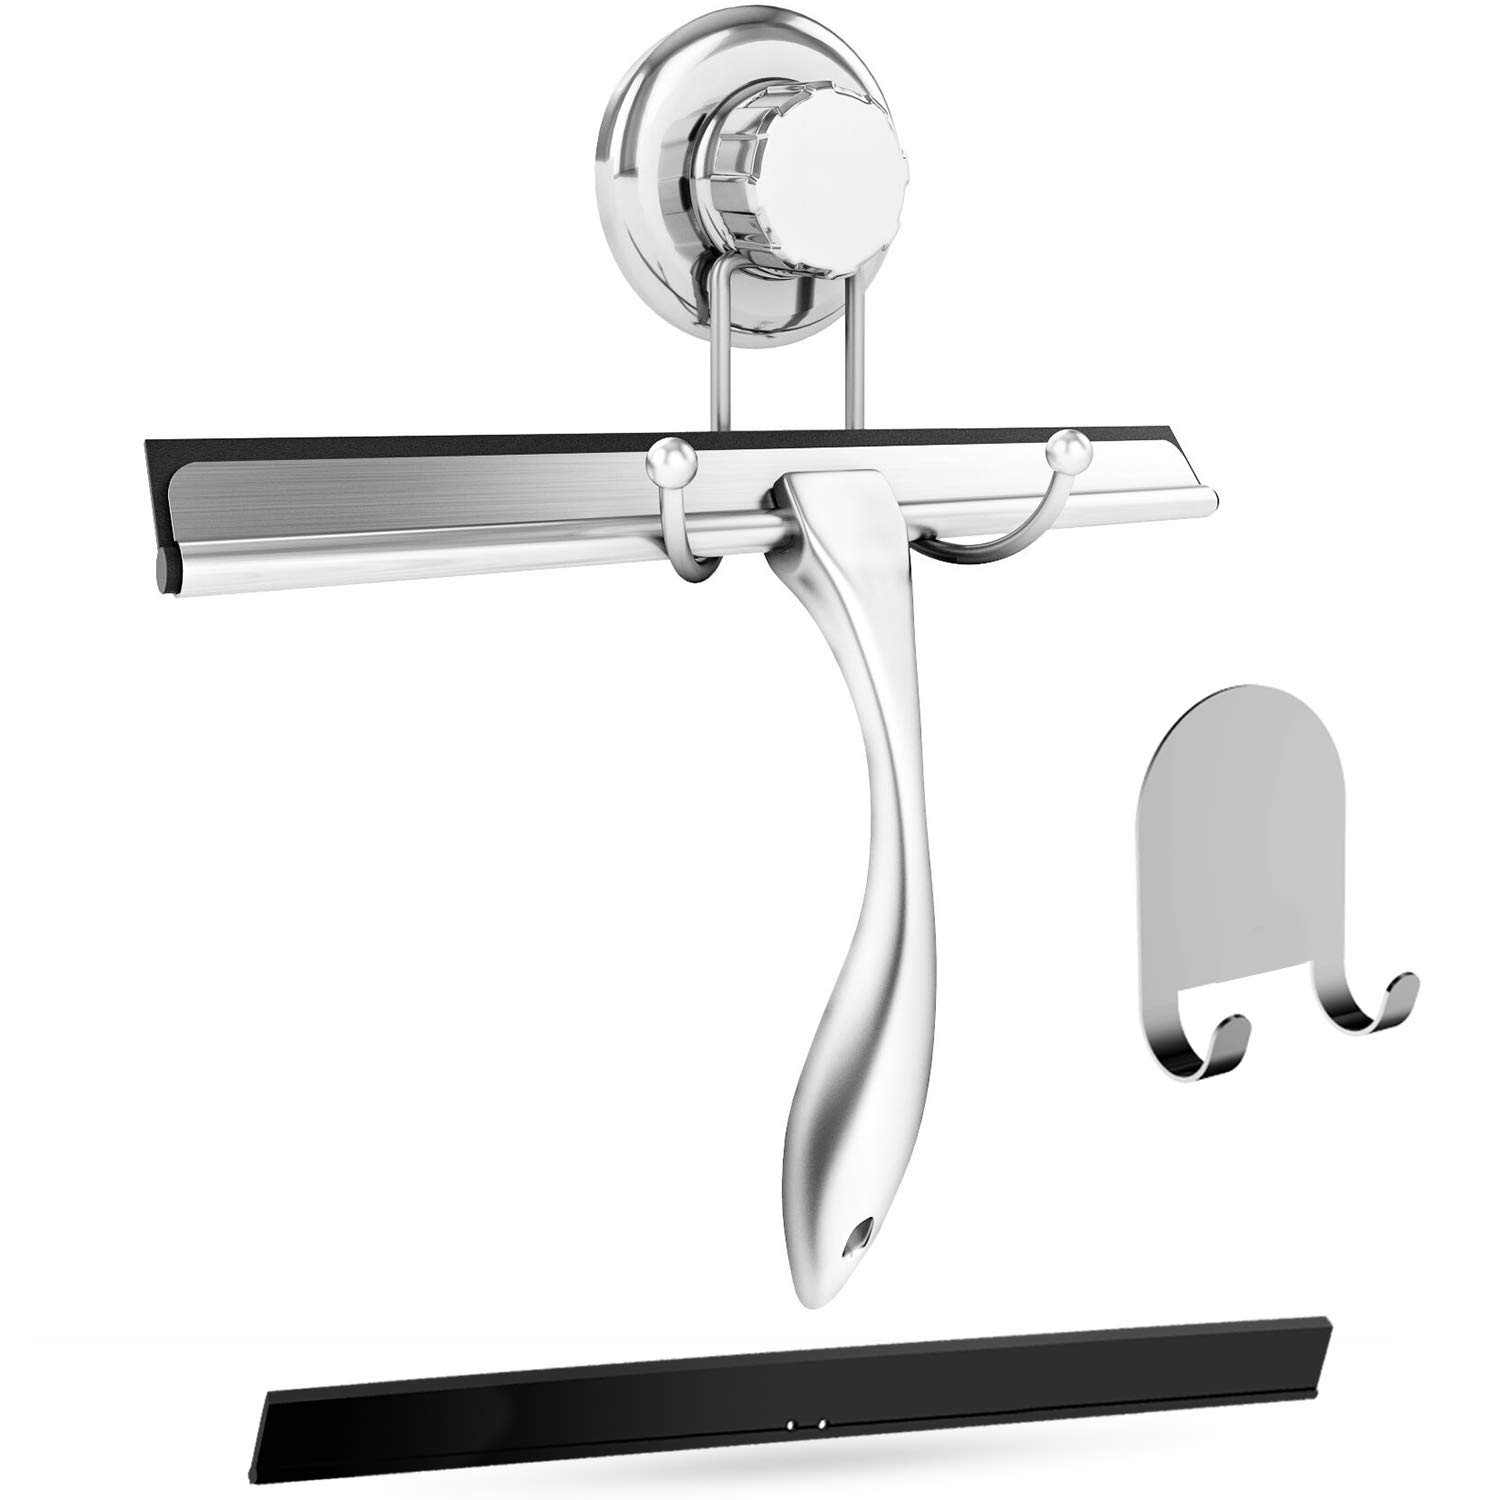 HASKO accessories Bathroom Shower Squeegee Chrome Plated Stainless Steel with Matching Suction Cup Hook Holder, 3M Adhesive Mounting Disc, 3M Hook,1 Replacement Rubber Blade, 9.8-Inch by HASKO accessories